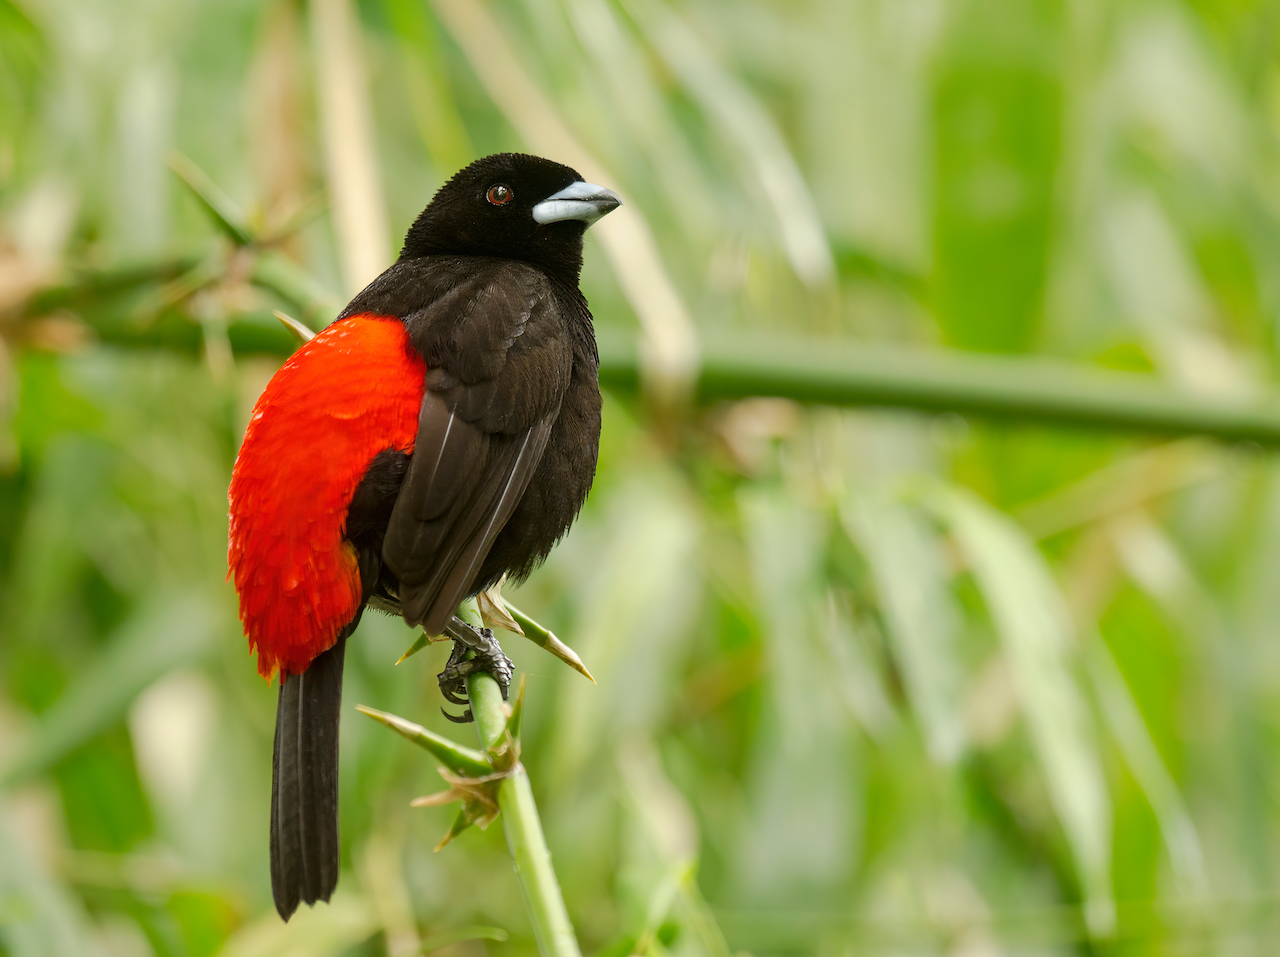 Carara National Park: one of the most important sites for birdwatching Costa Rica.